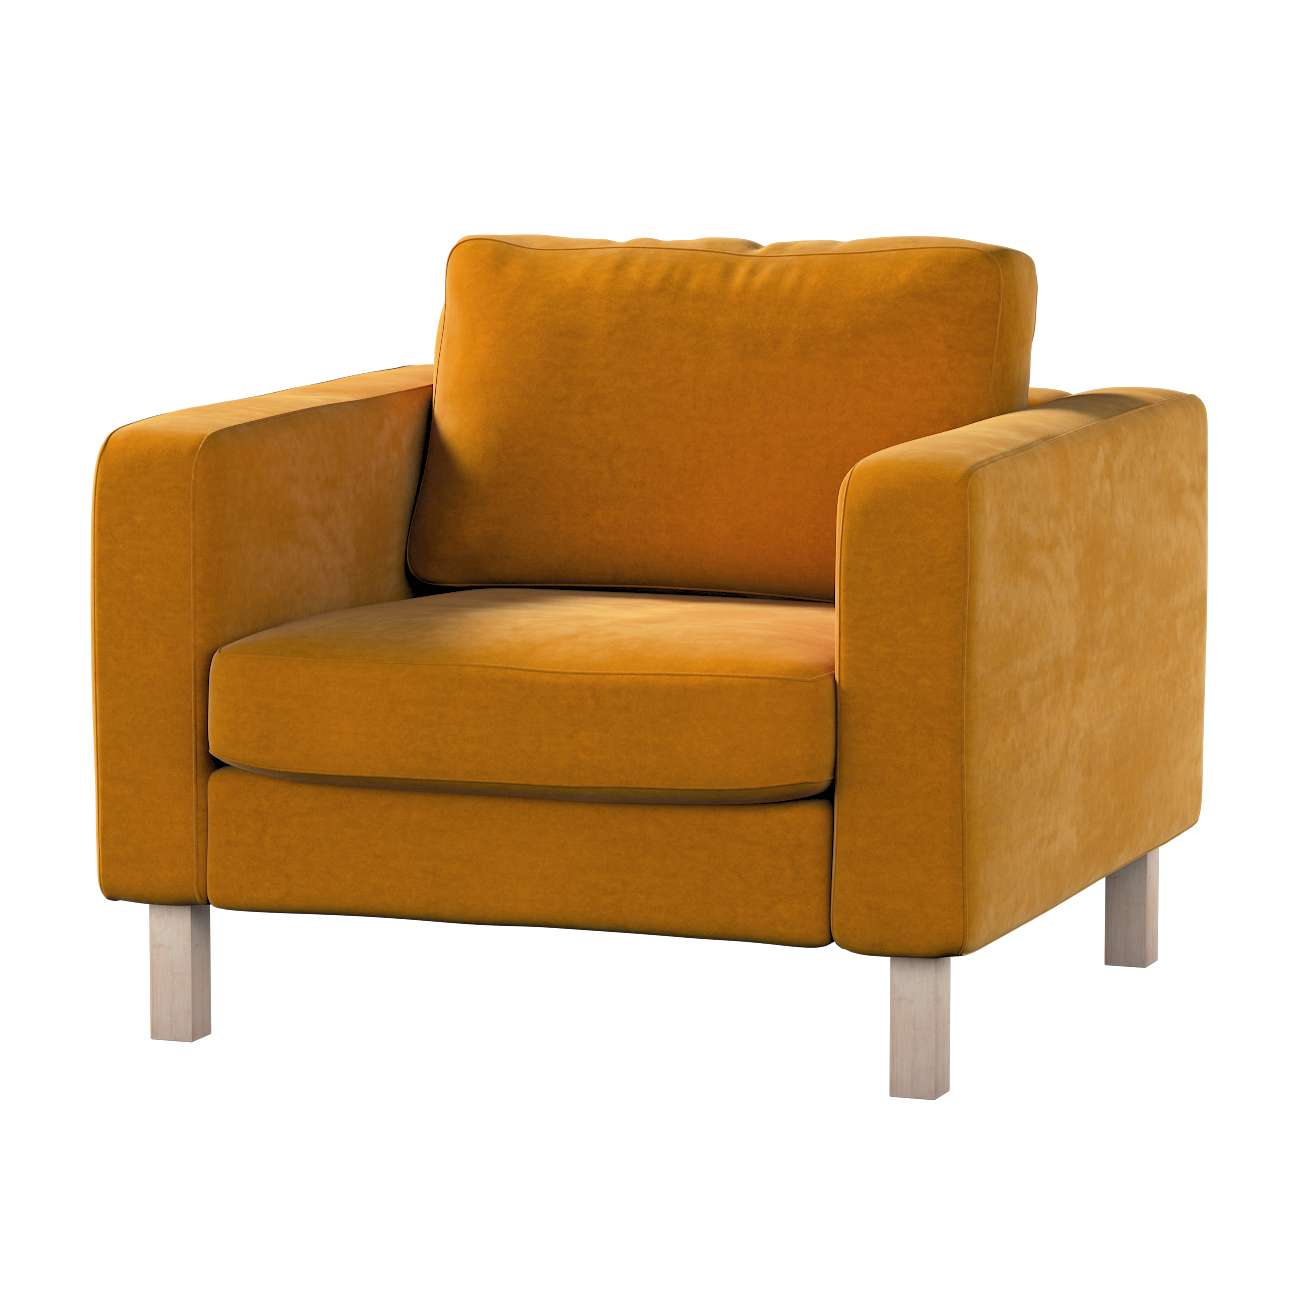 Karlstad armchair cover in collection Velvet, fabric: 704-23